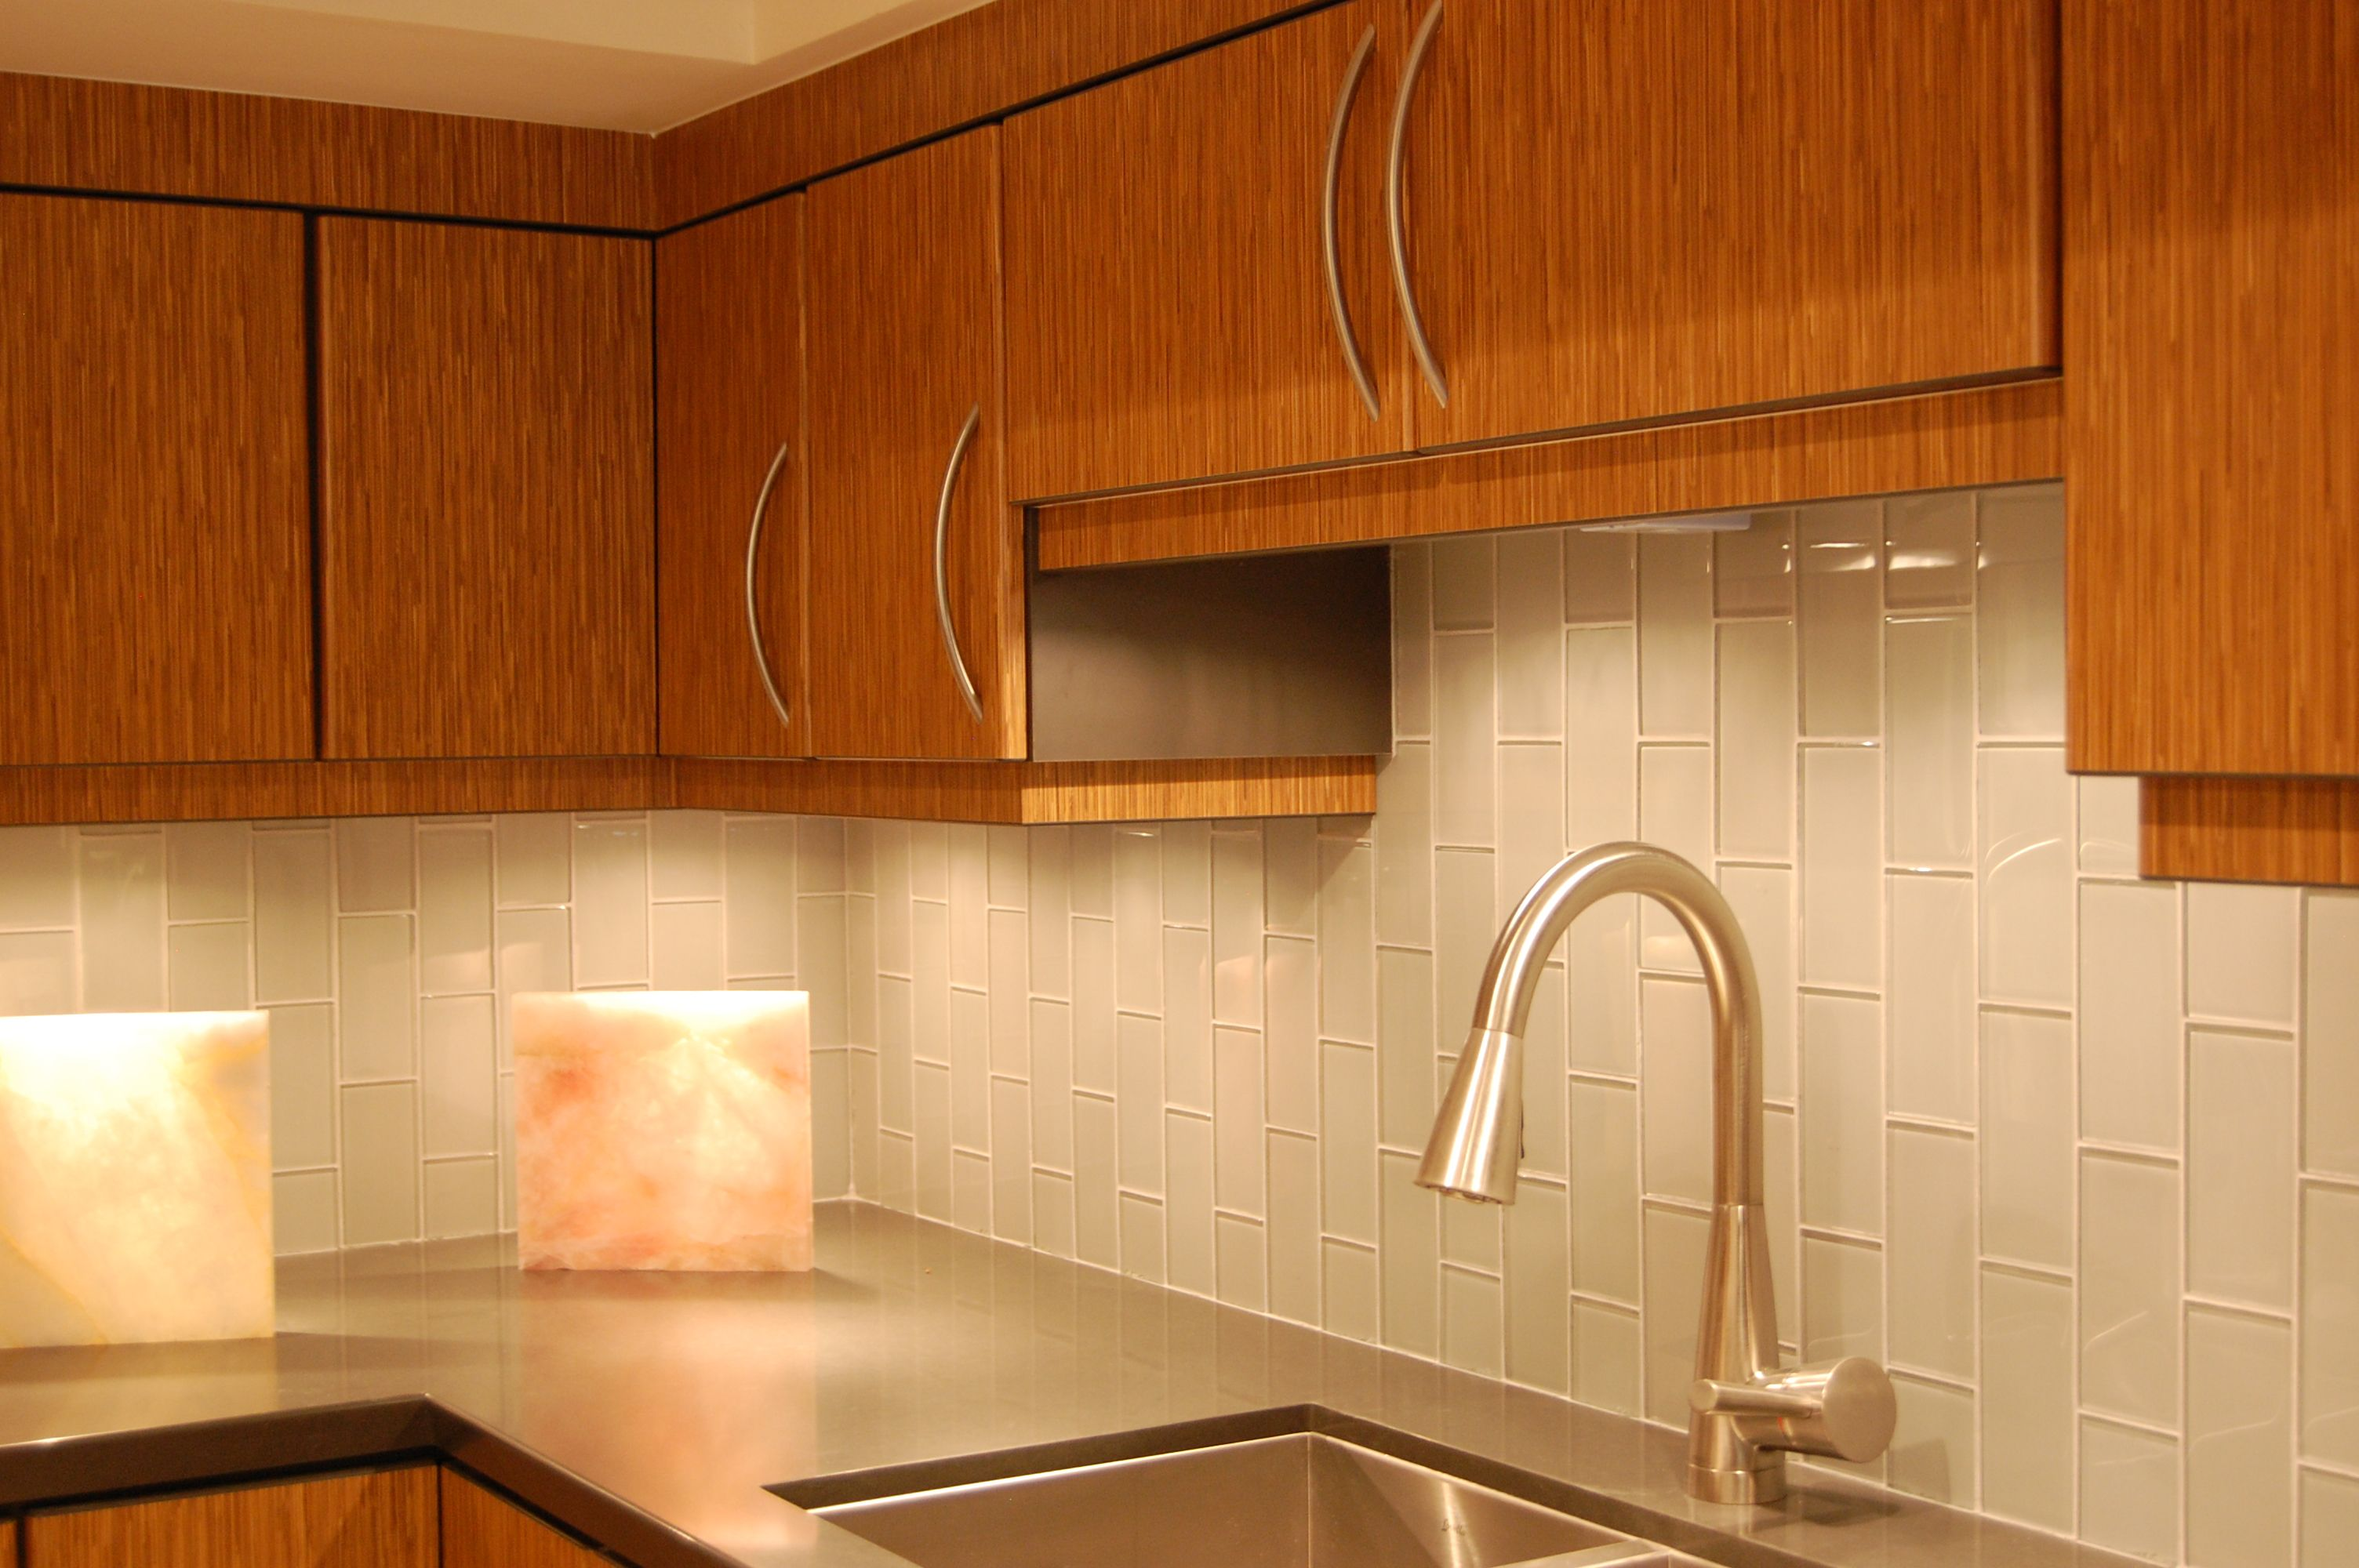 Kitchen backsplash glass on pinterest kitchen backsplash glass tiles and kitchen tiles Backsplash tile installation